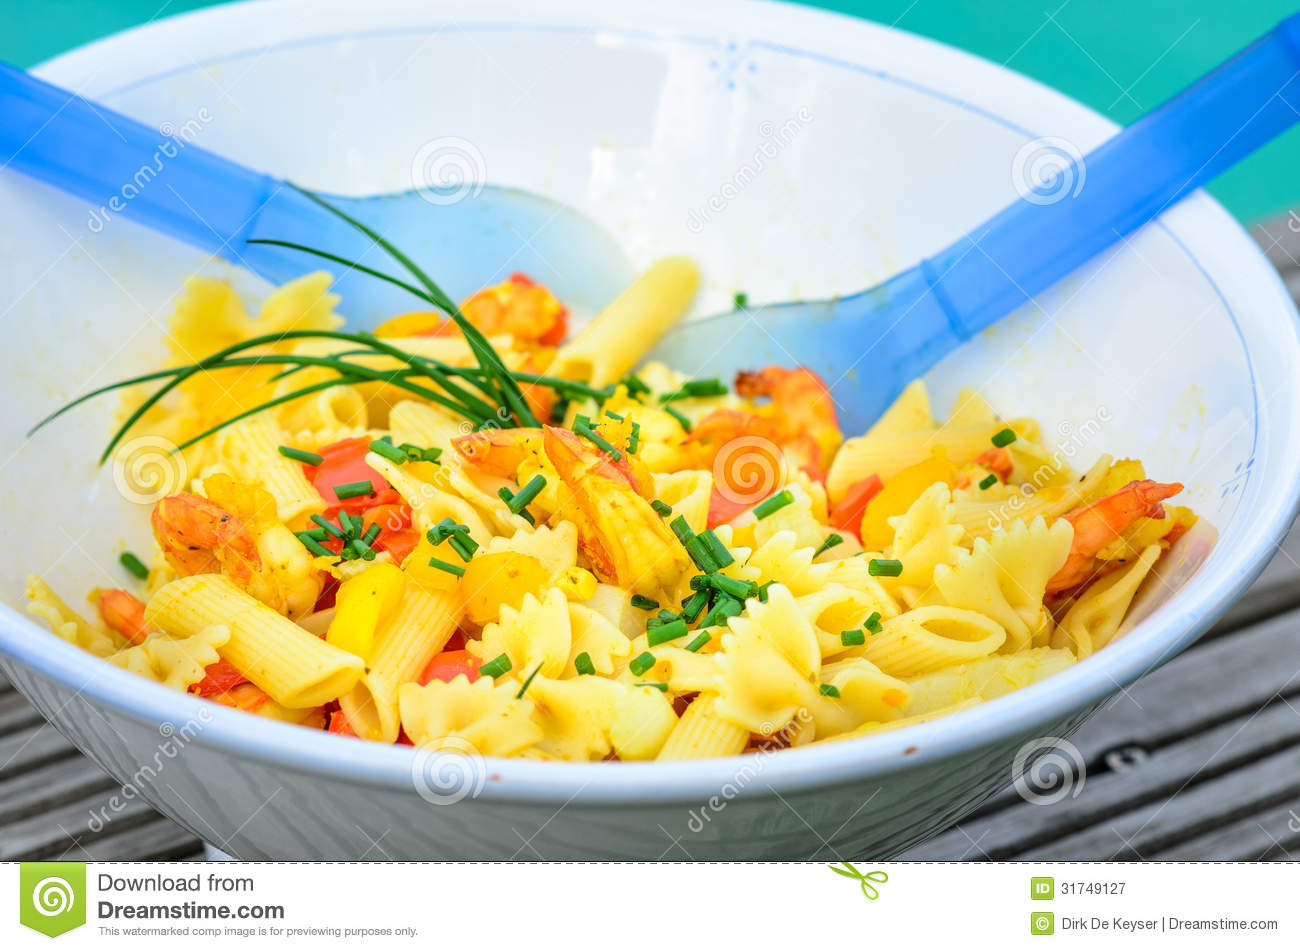 Royalty Free Stock Photography: Pasta salad with shrimps